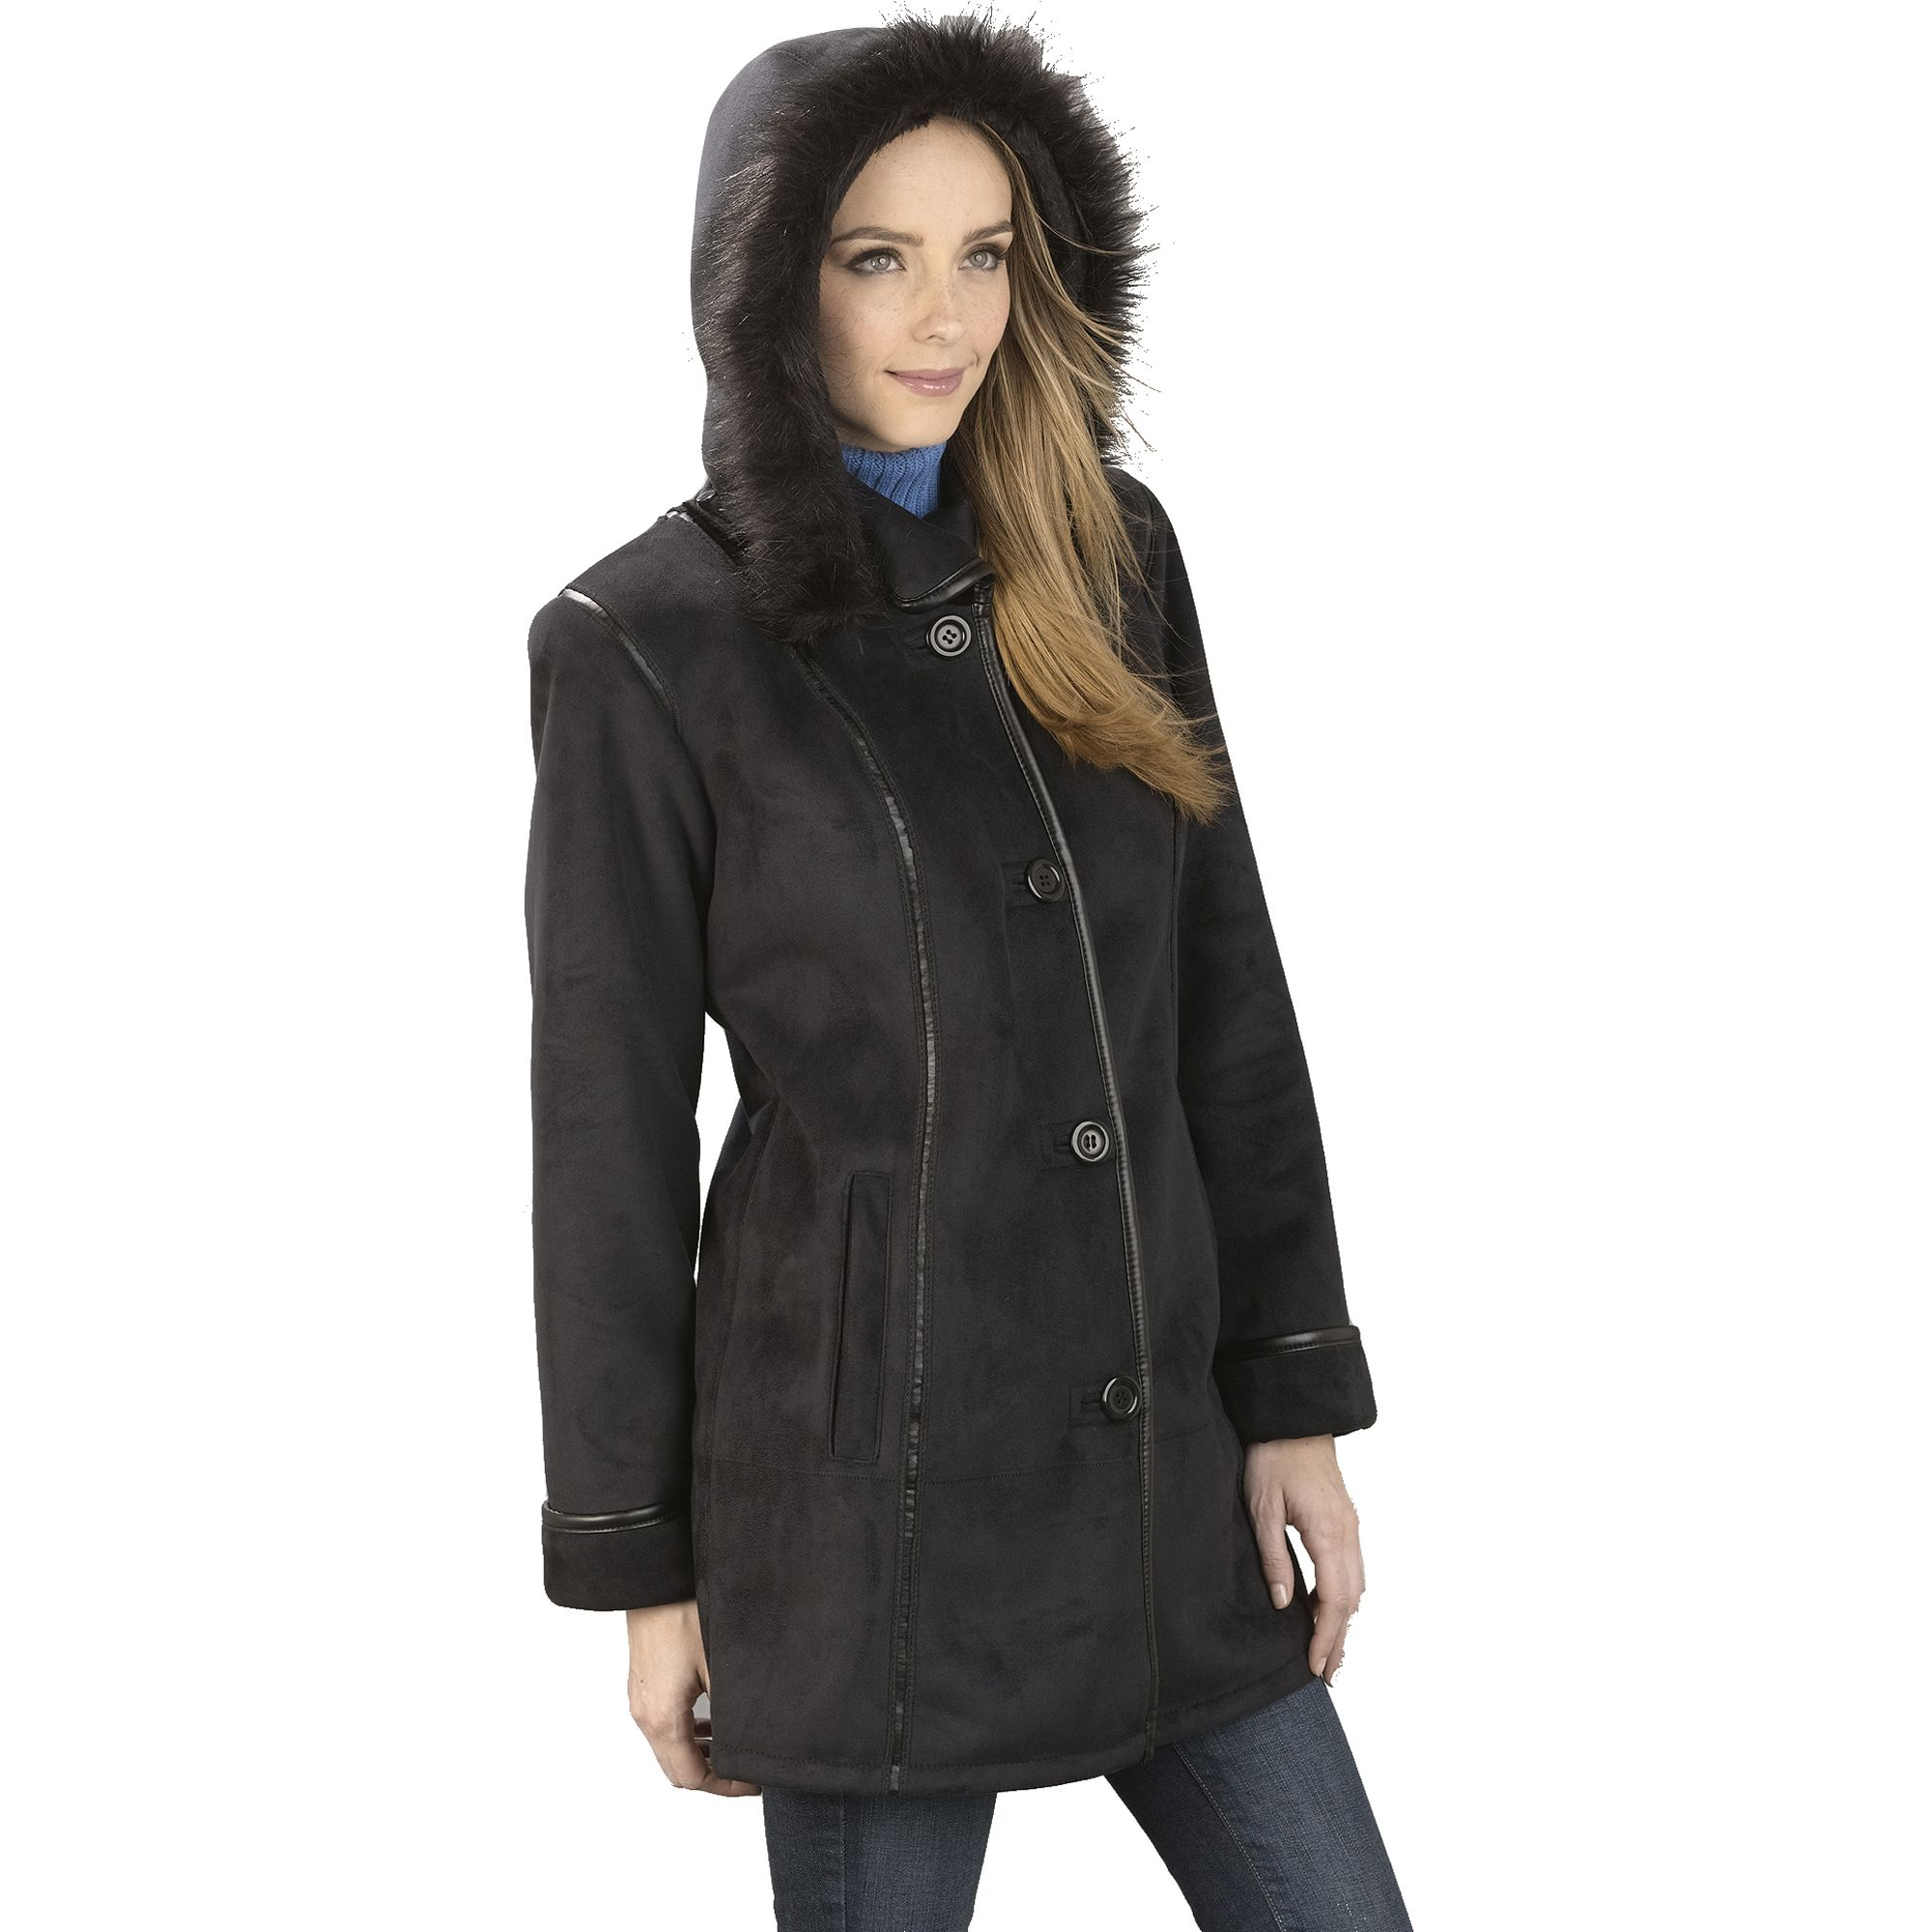 Excelled Women's Hooded Jacket at Kmart.com